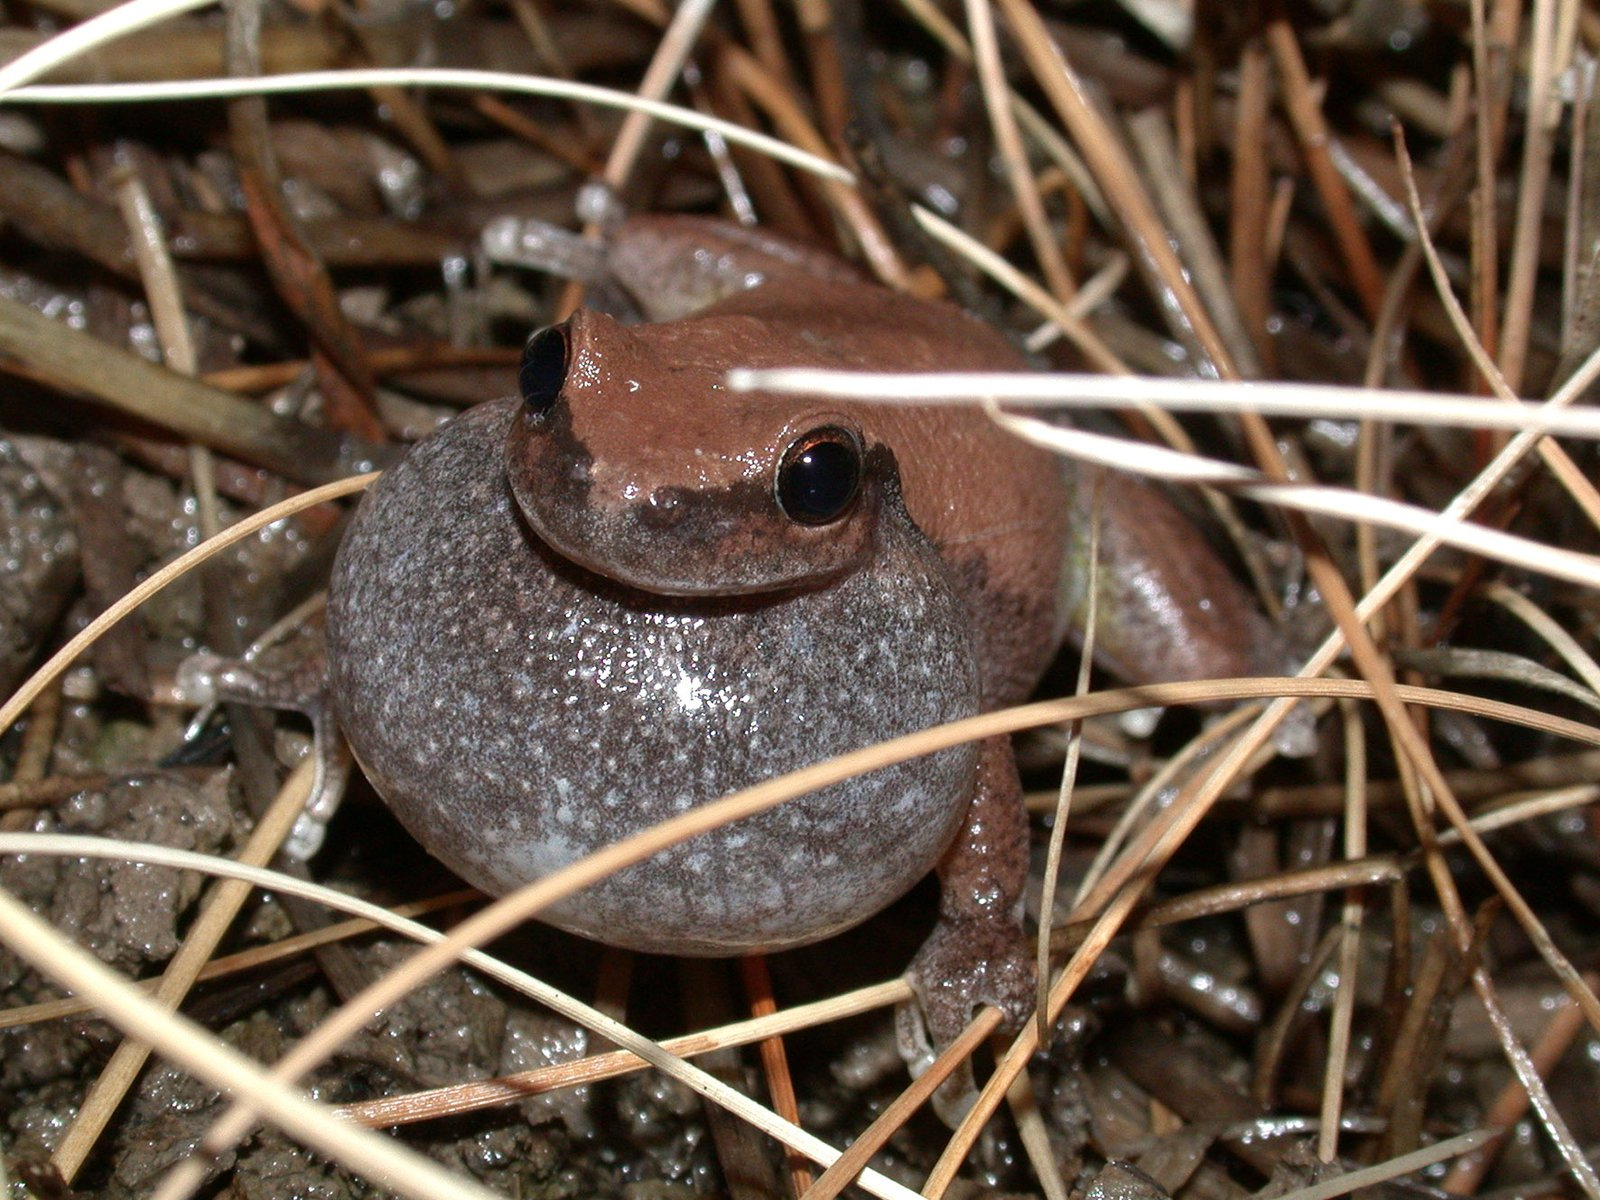 Hitchhiking Frogs - uploaded as part of blog by Tim Cutajar in May 2019